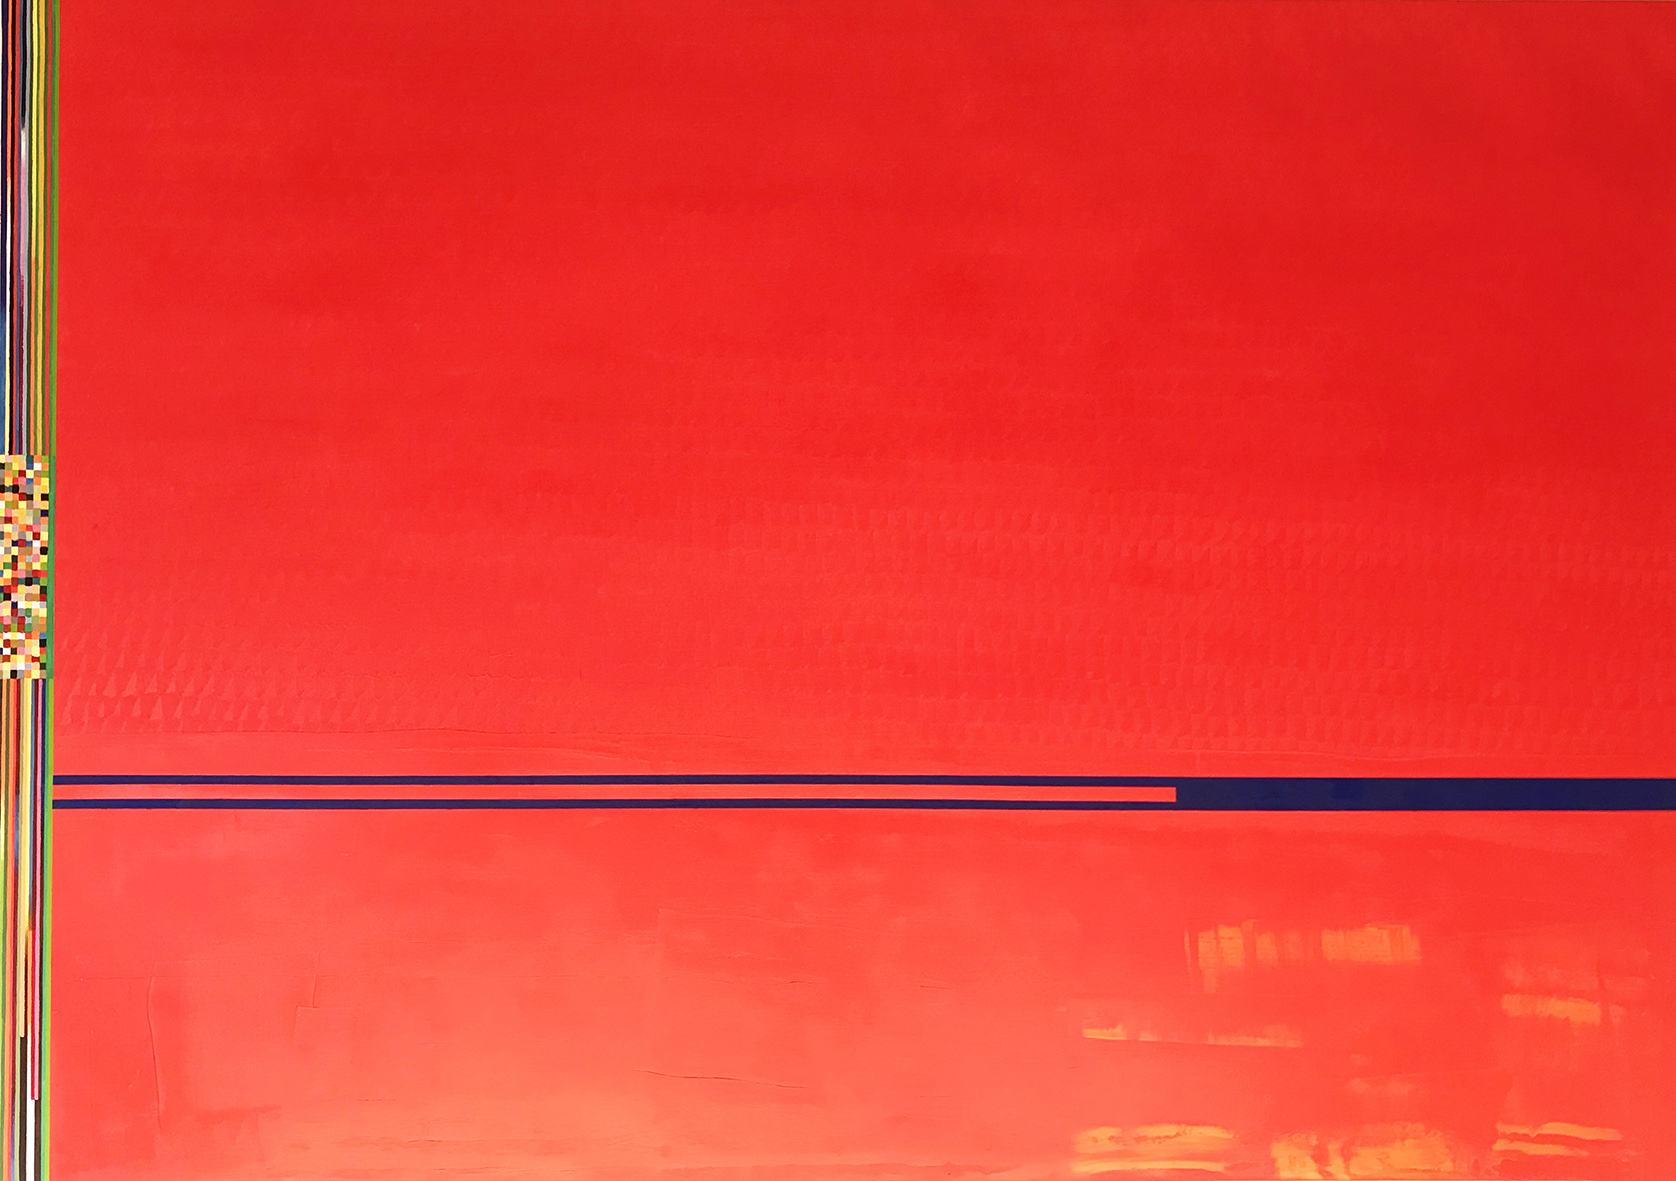 Red painting 1 (146x208cm) 2018-2019 (private collection)